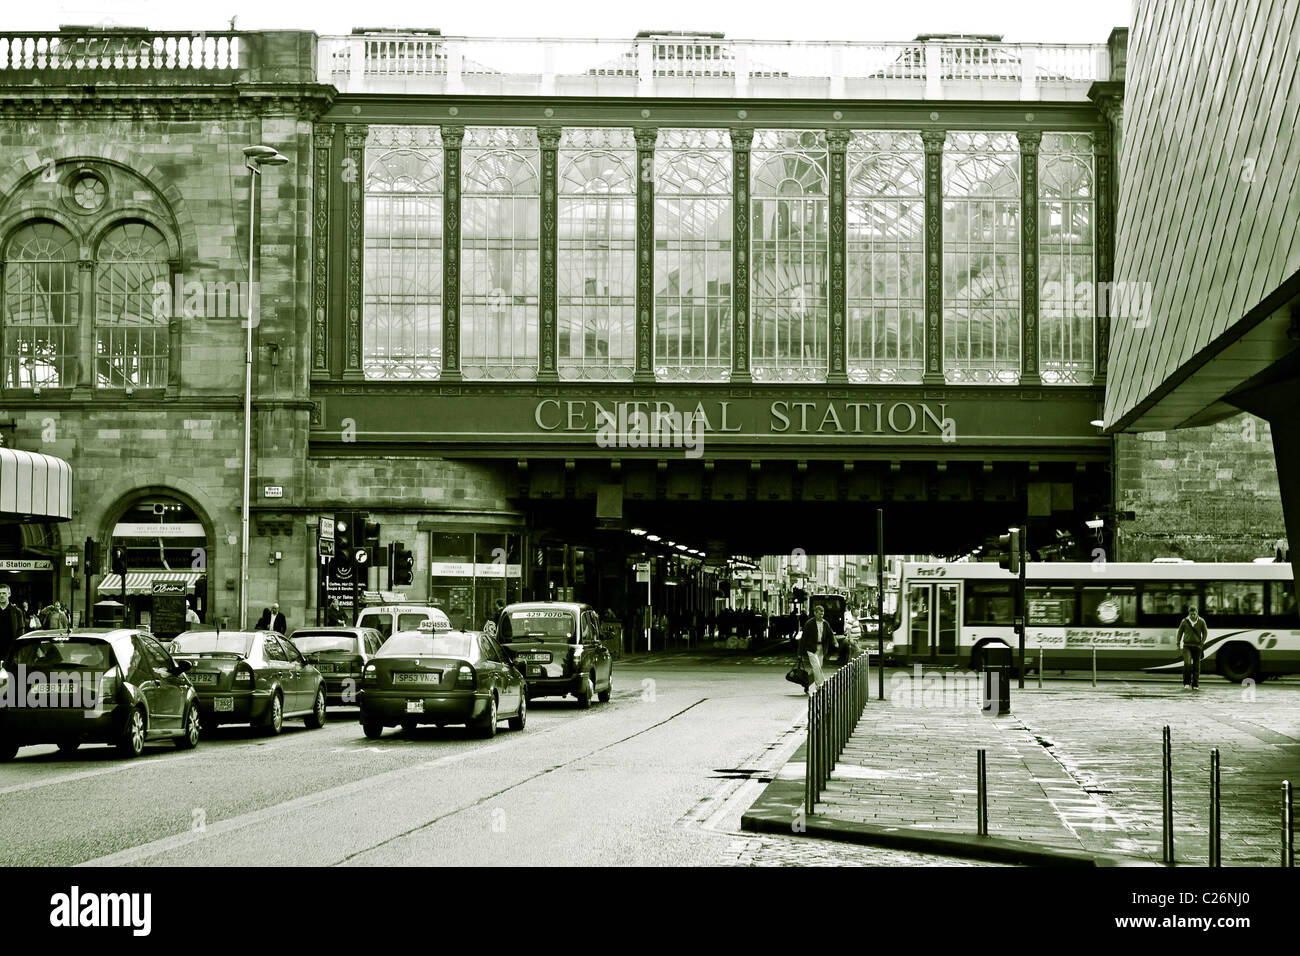 Glasgow central train station - Stock Image